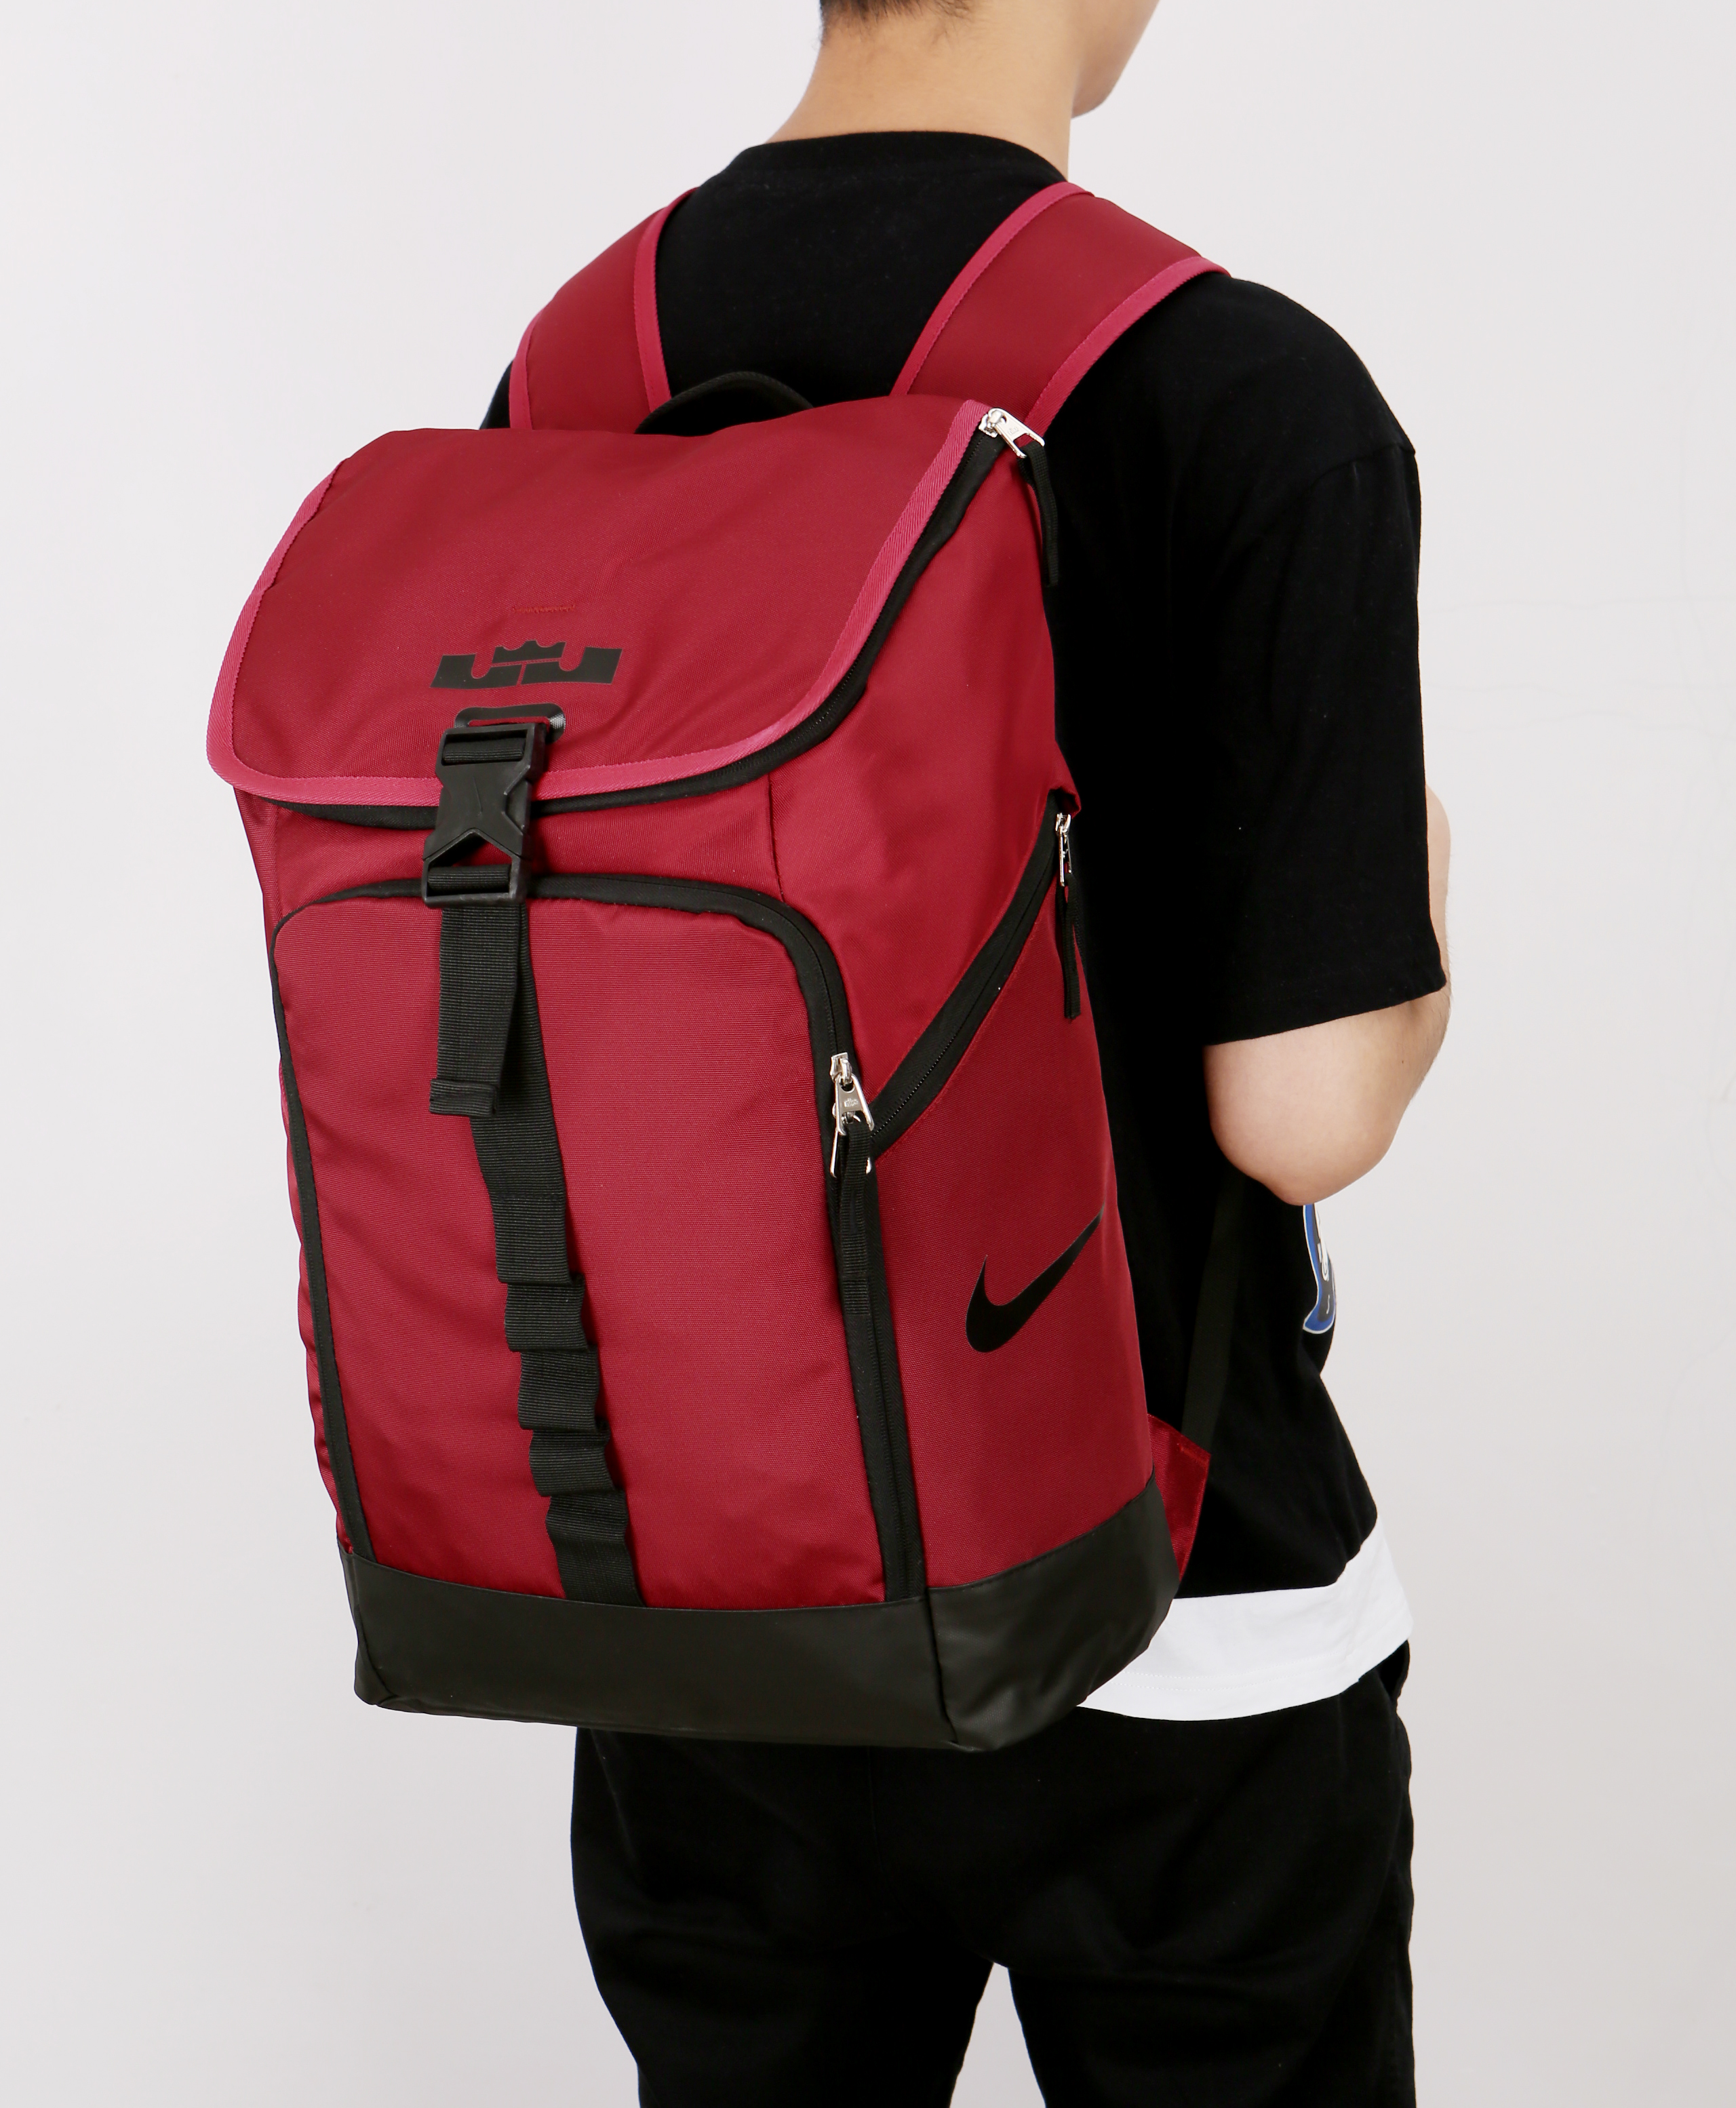 Nike LeBron Backpack Red Black